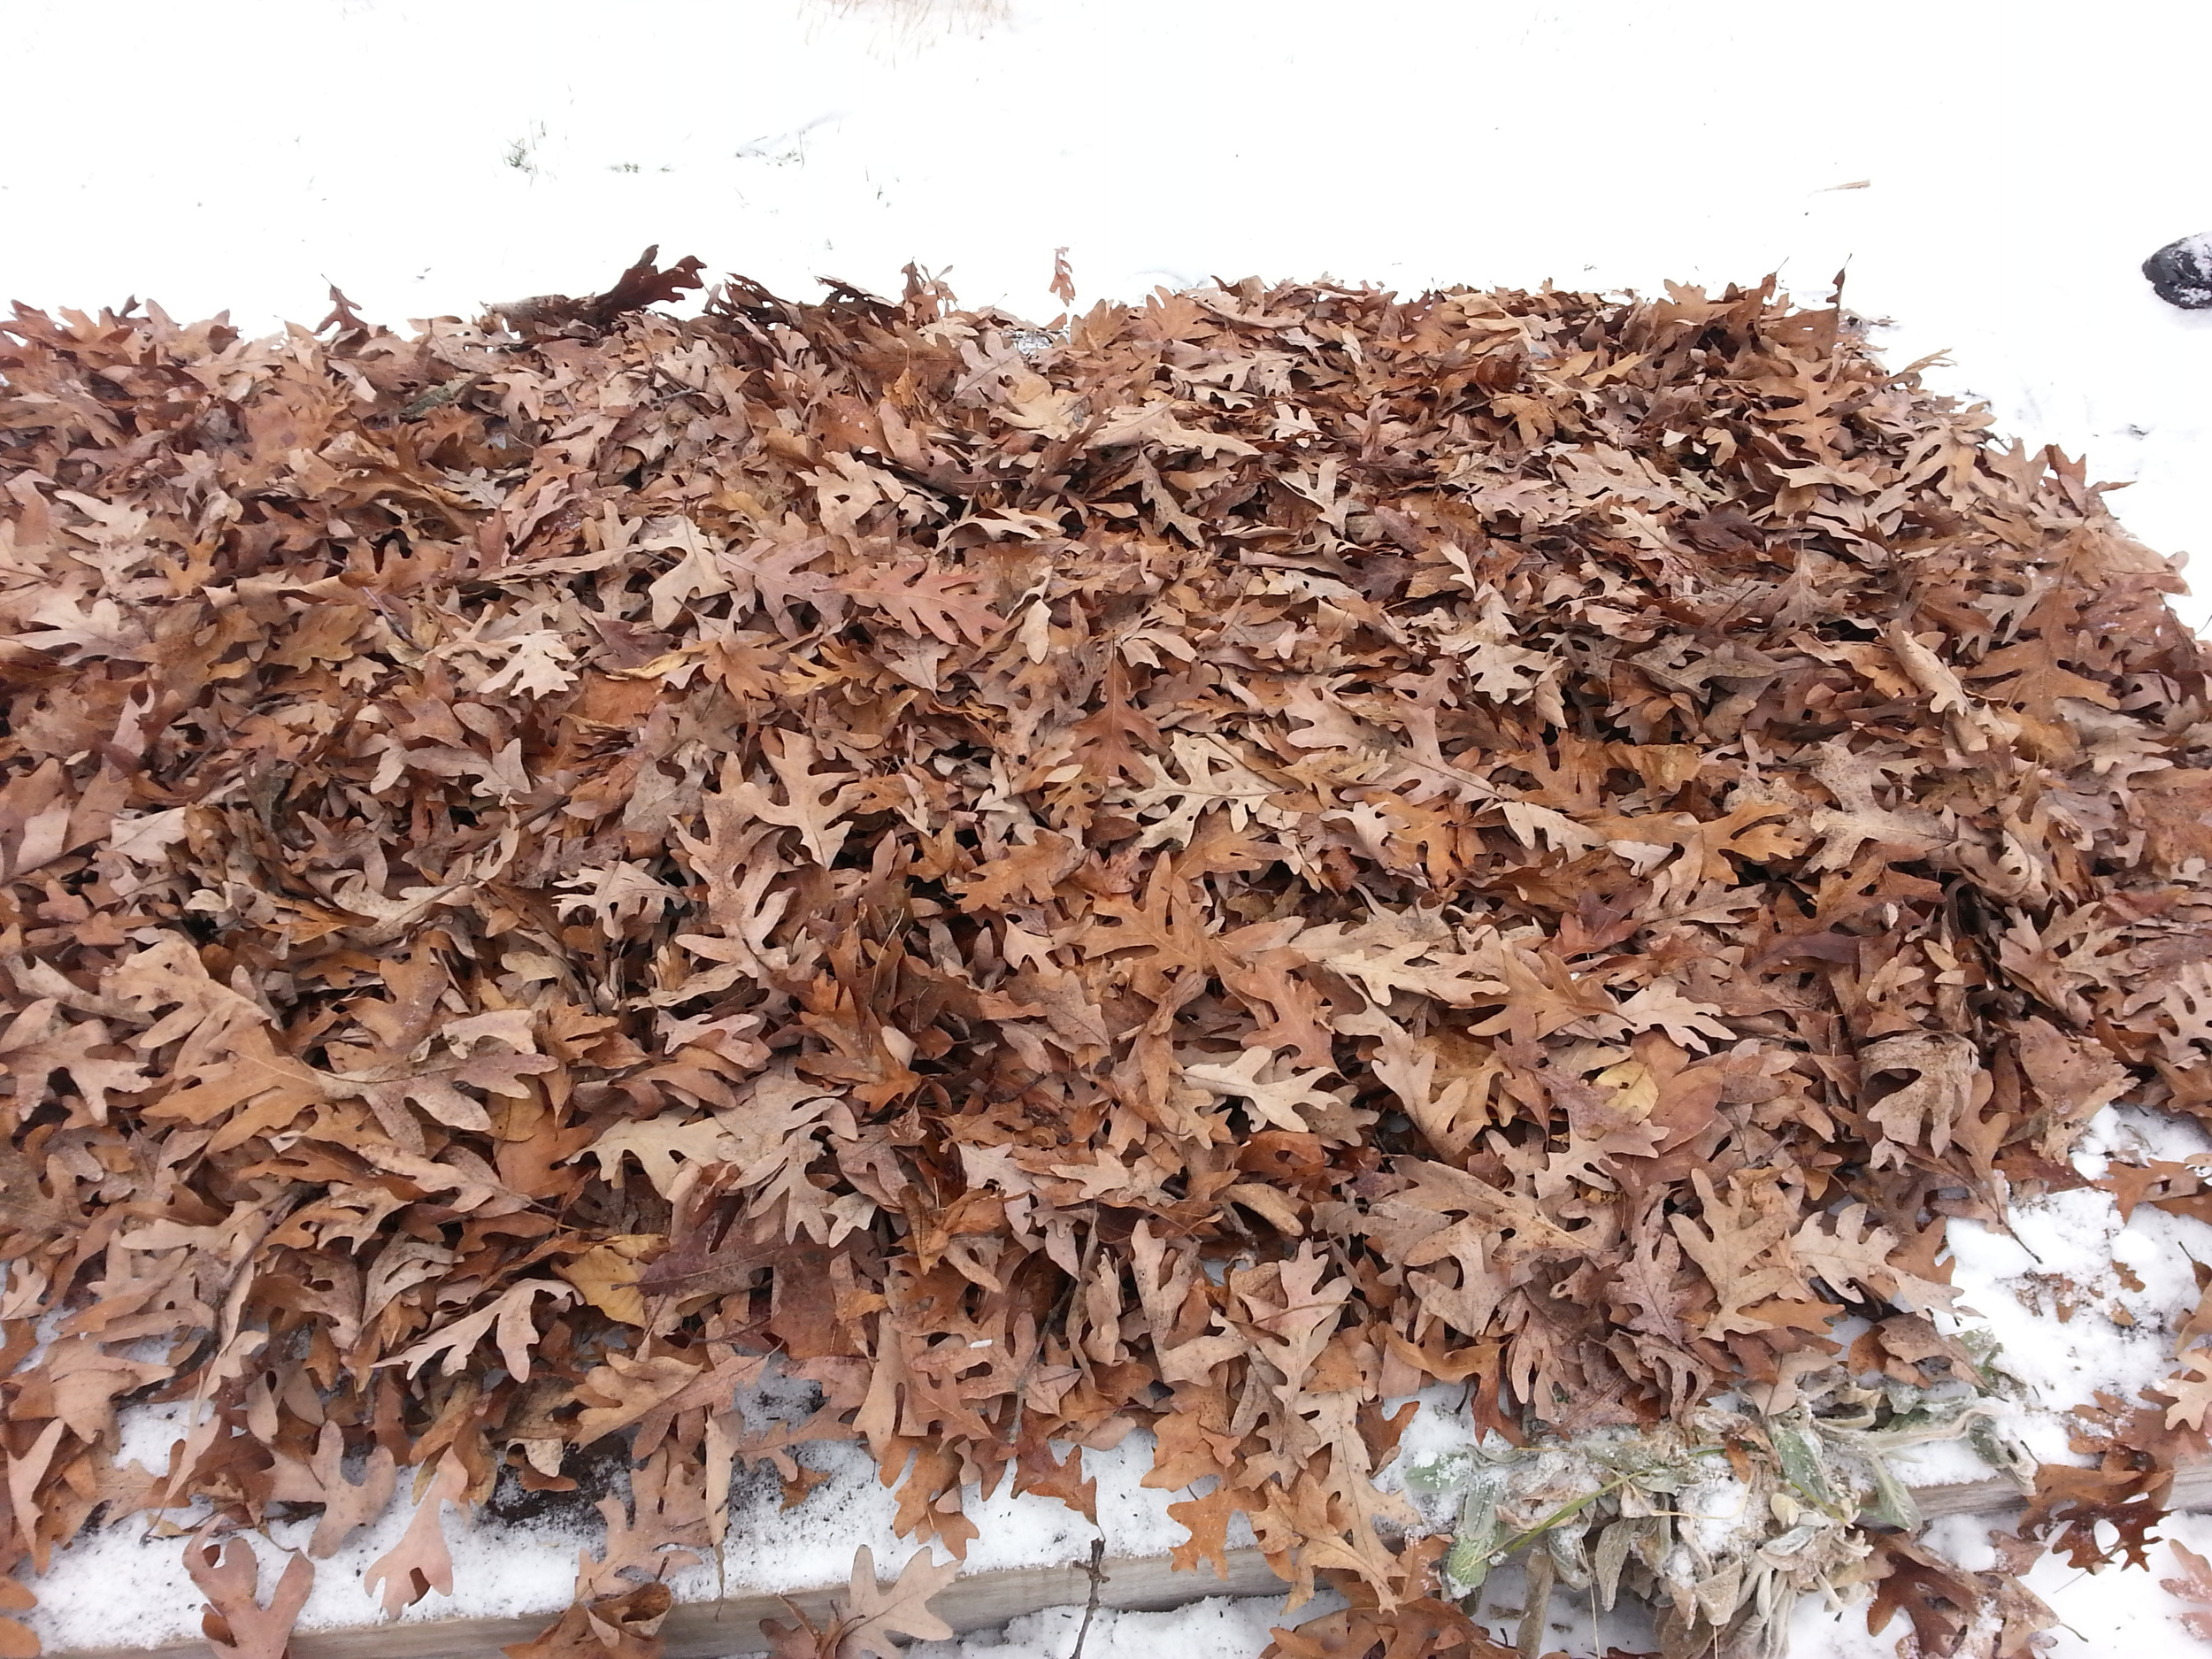 We probably should have laid these leaves down in October or November but we didn't get around to it until late in December. We'll see what happens in the spring?